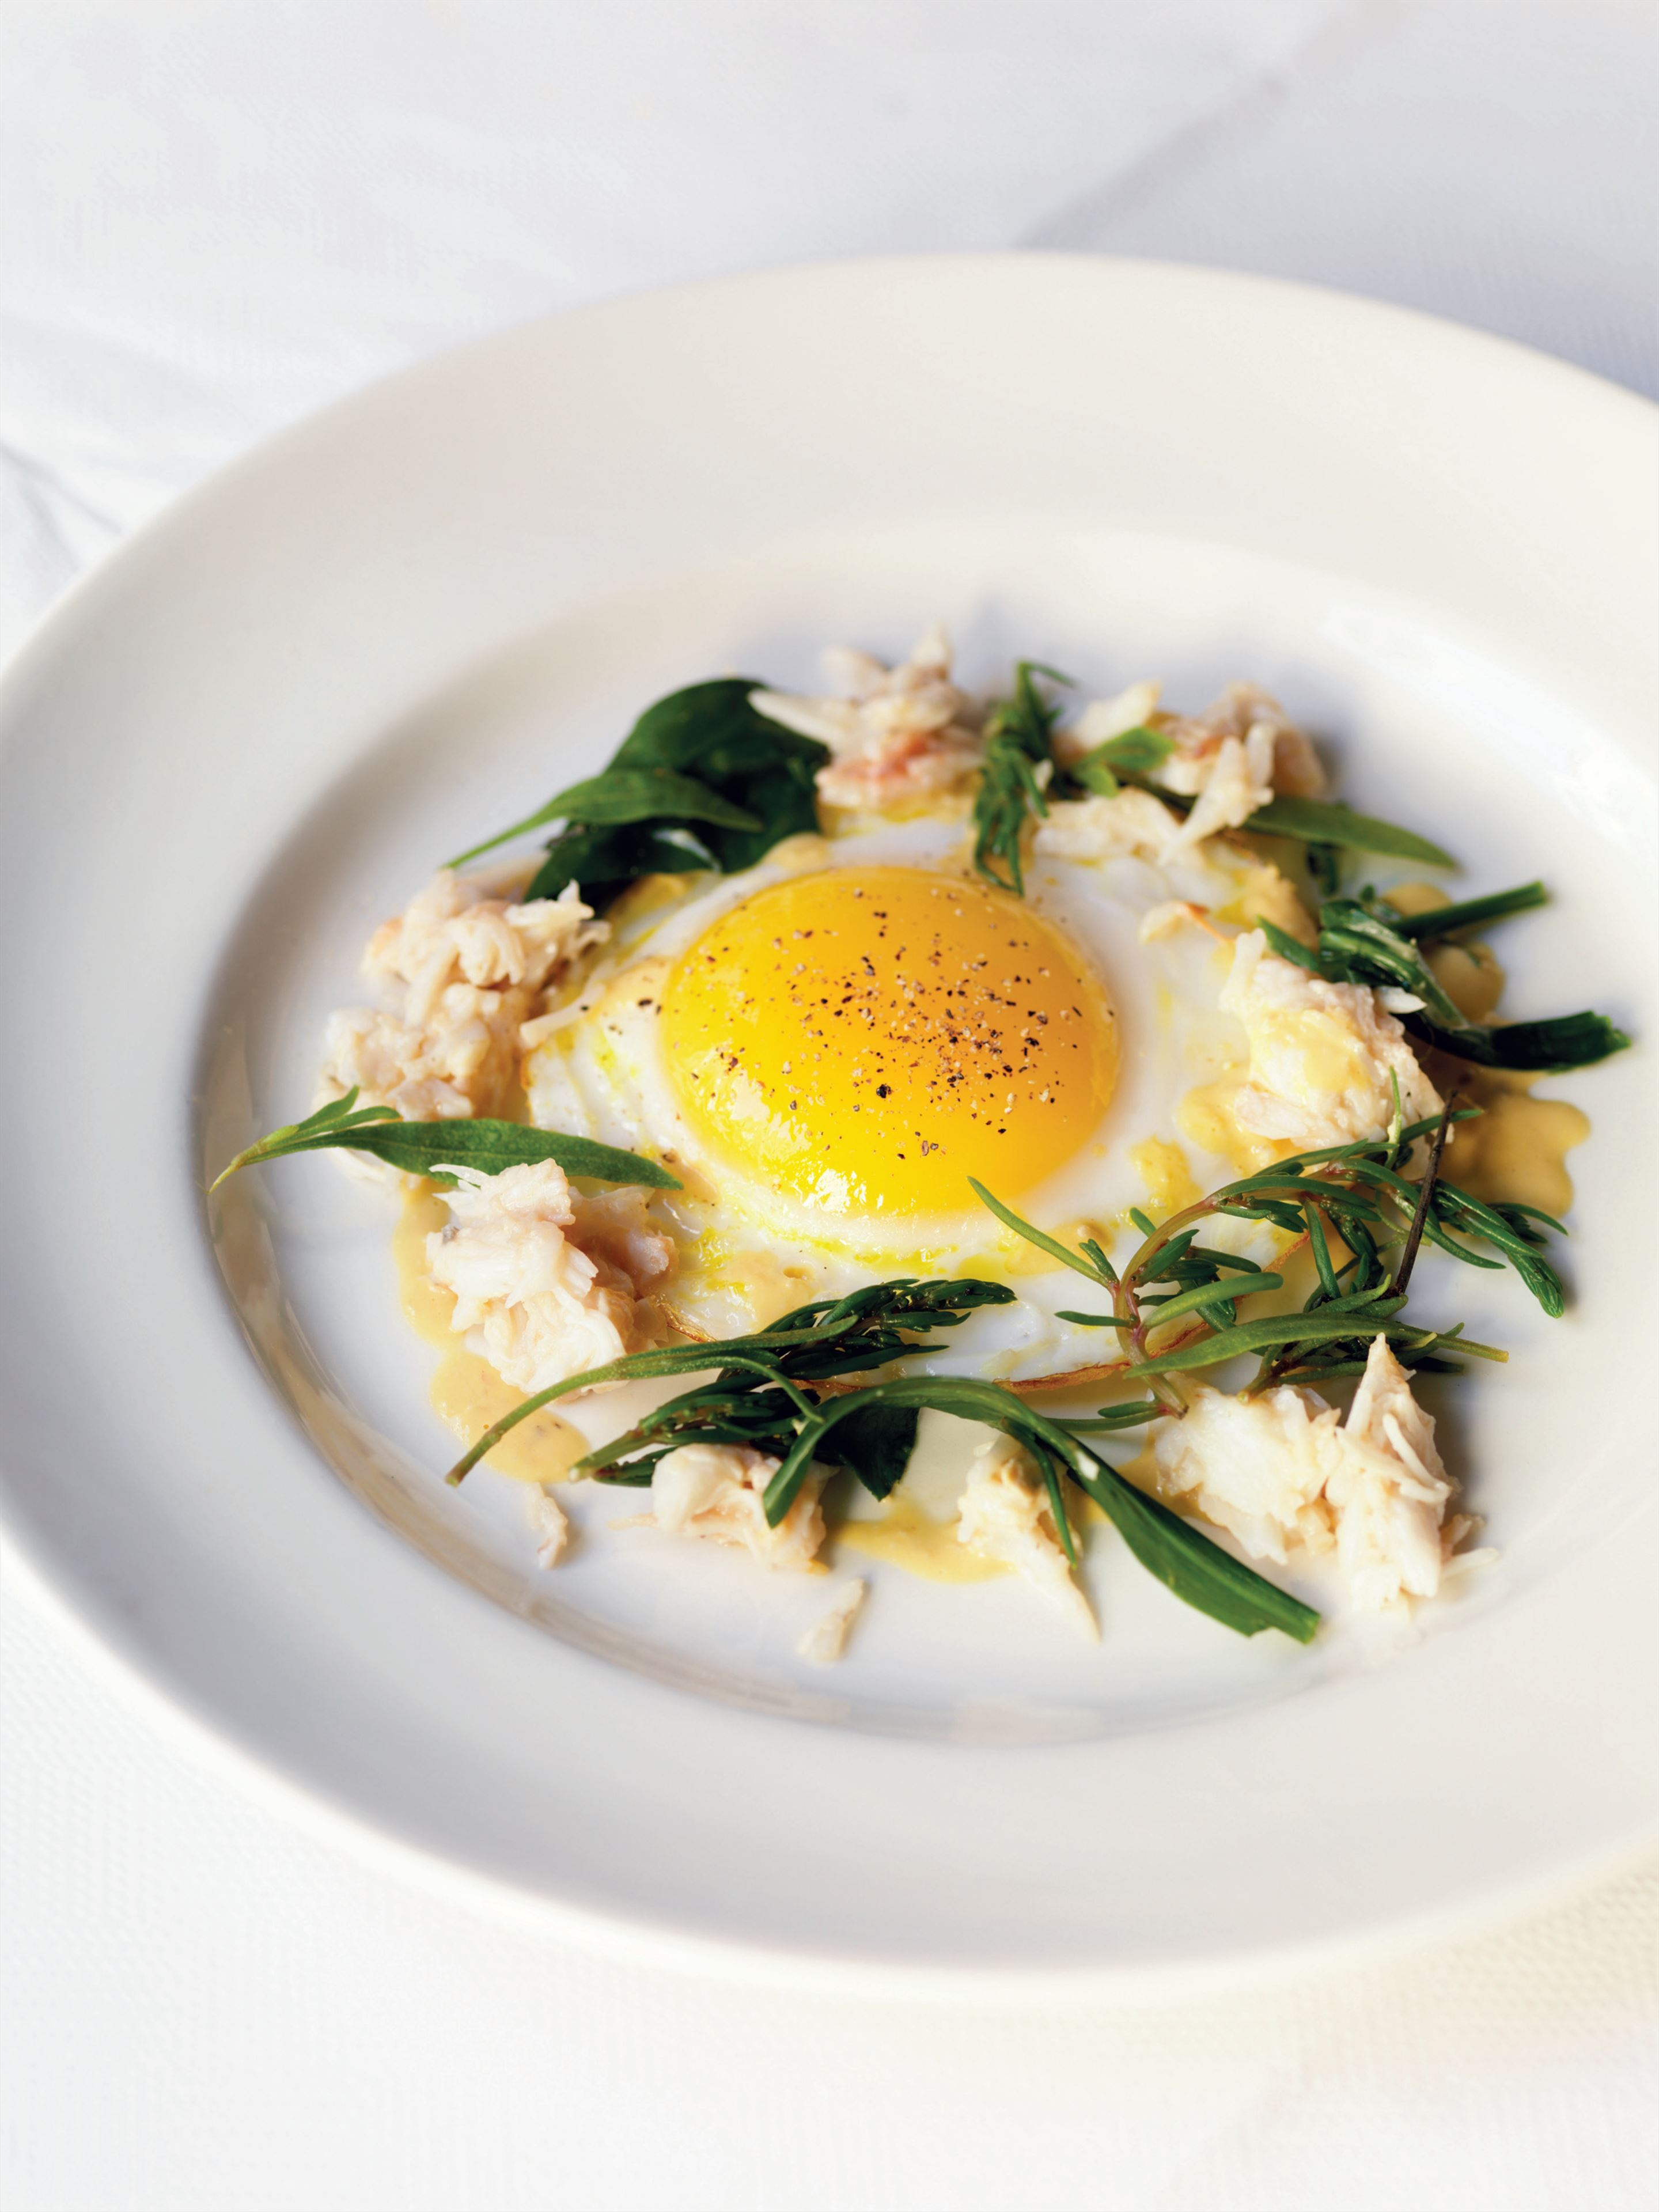 Fried duck's egg with spider crab and sea greens